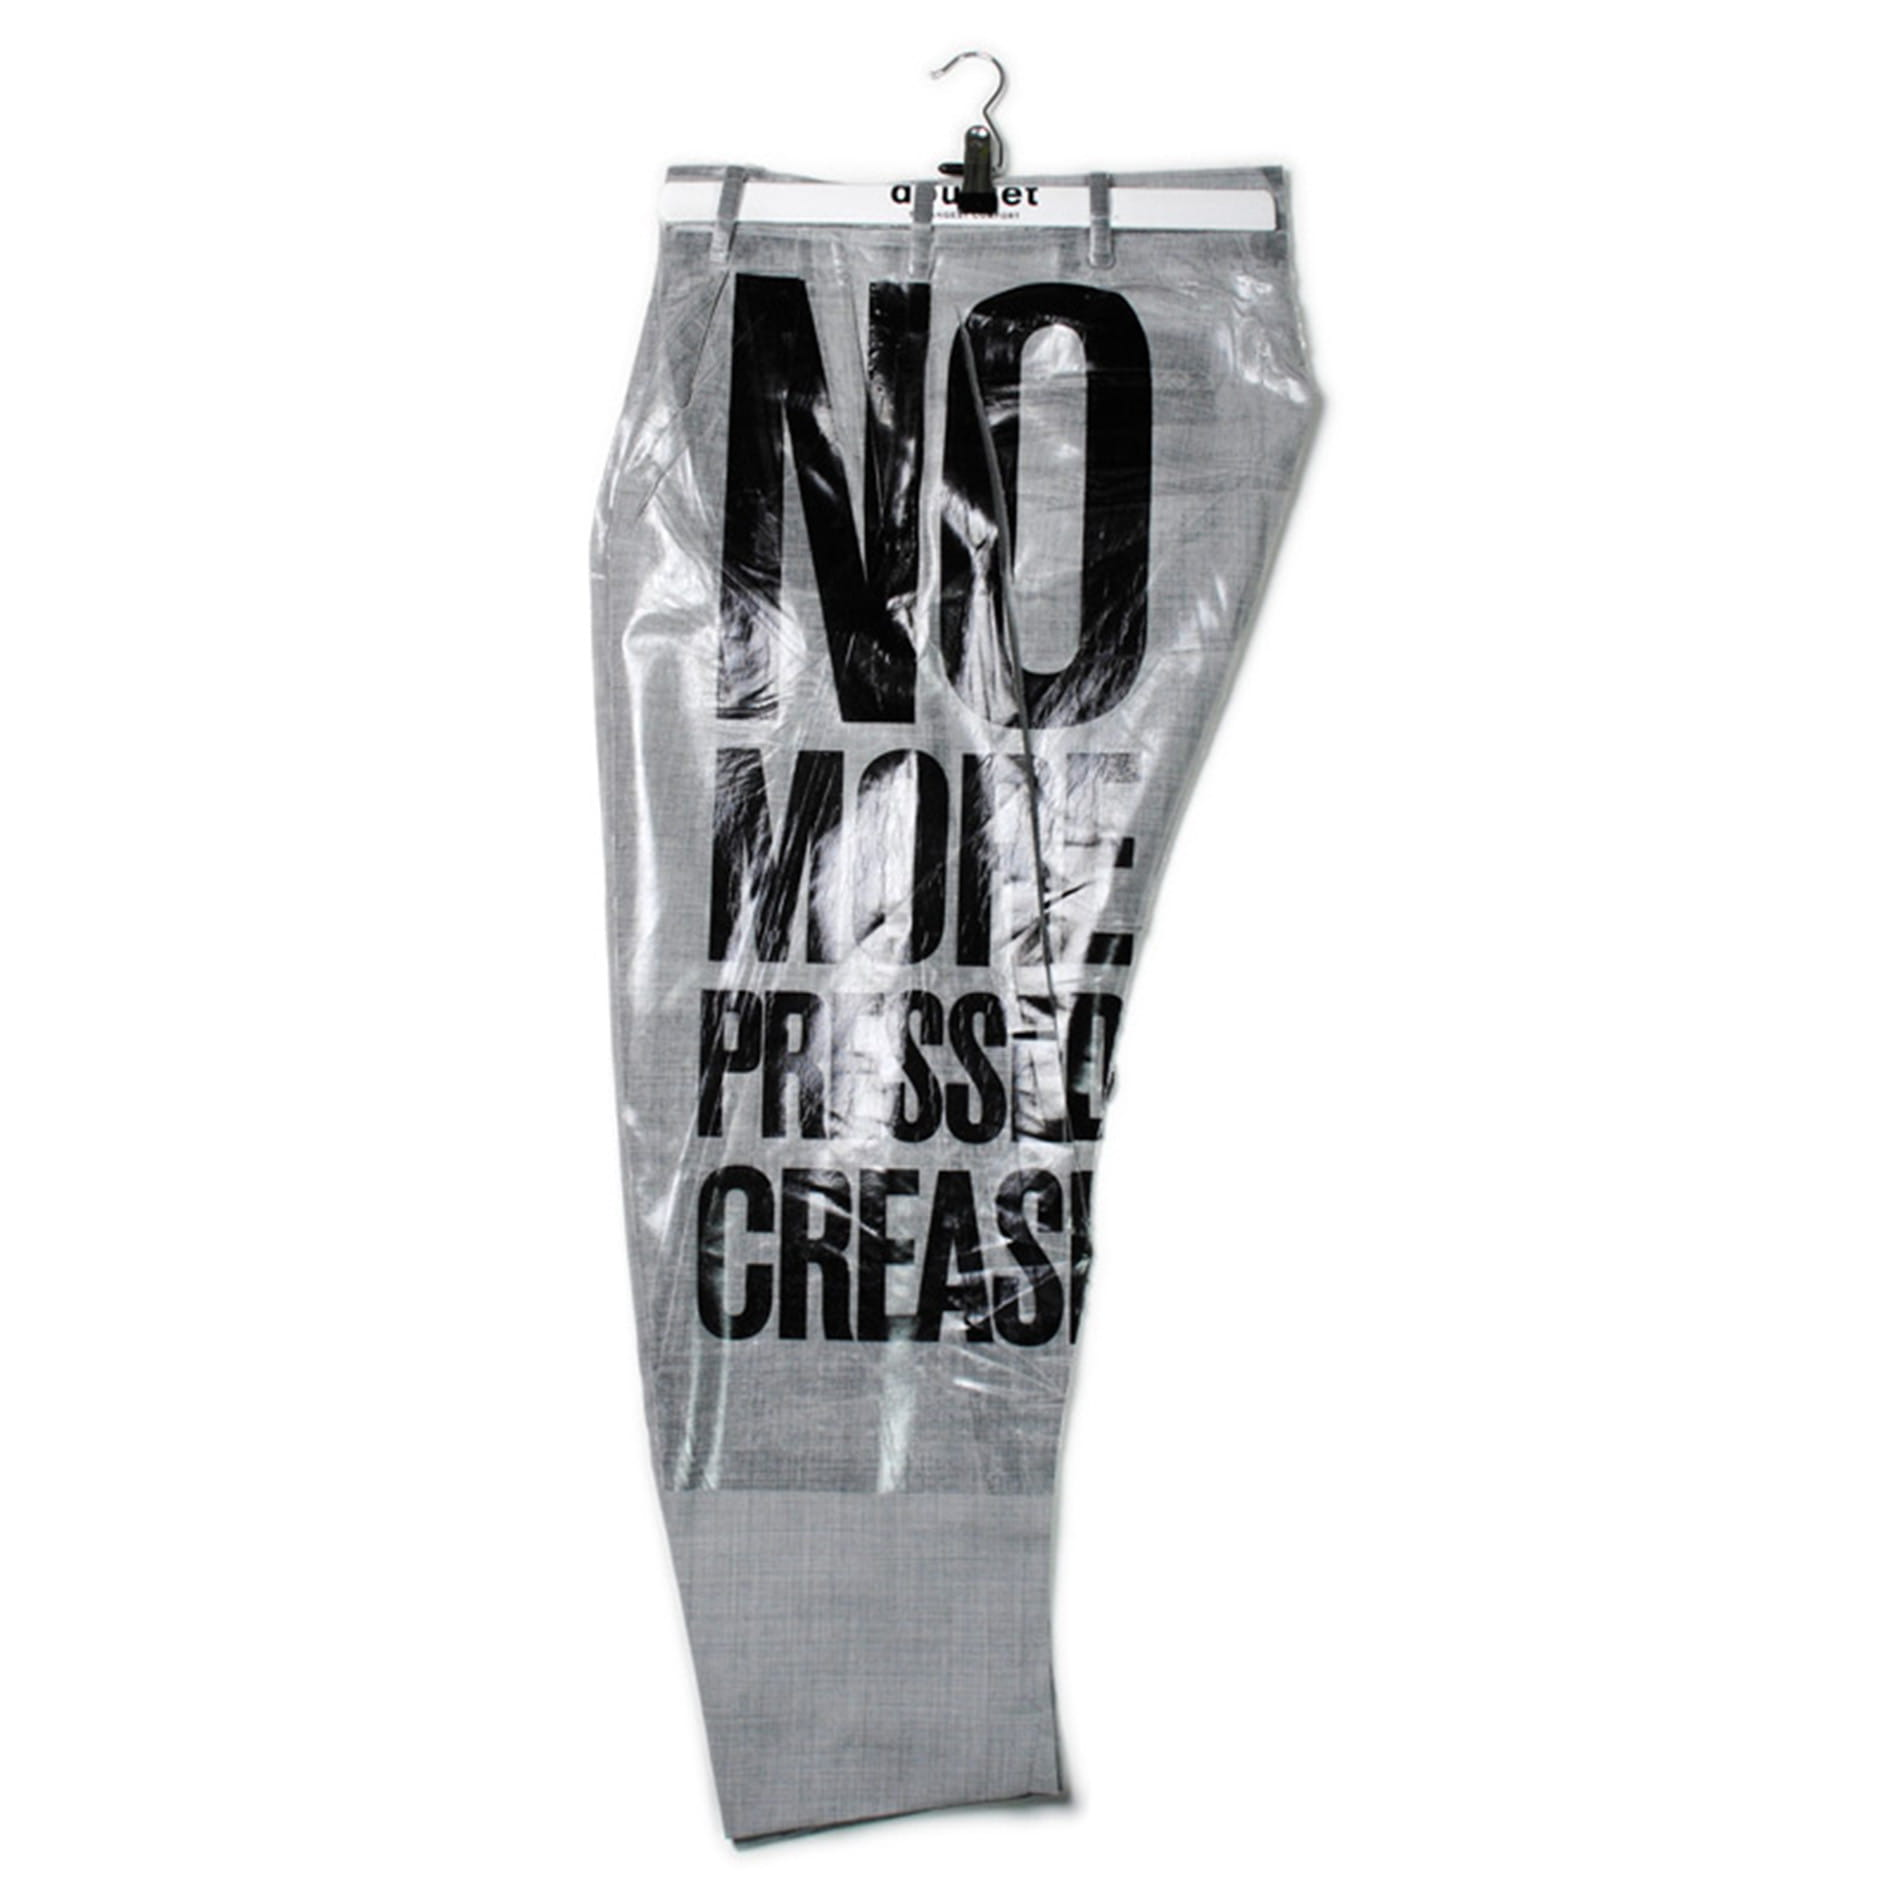 【doublet】MEN 2D PACKAGED 3D CUTTING TROUSERS SAYS SLOGAN